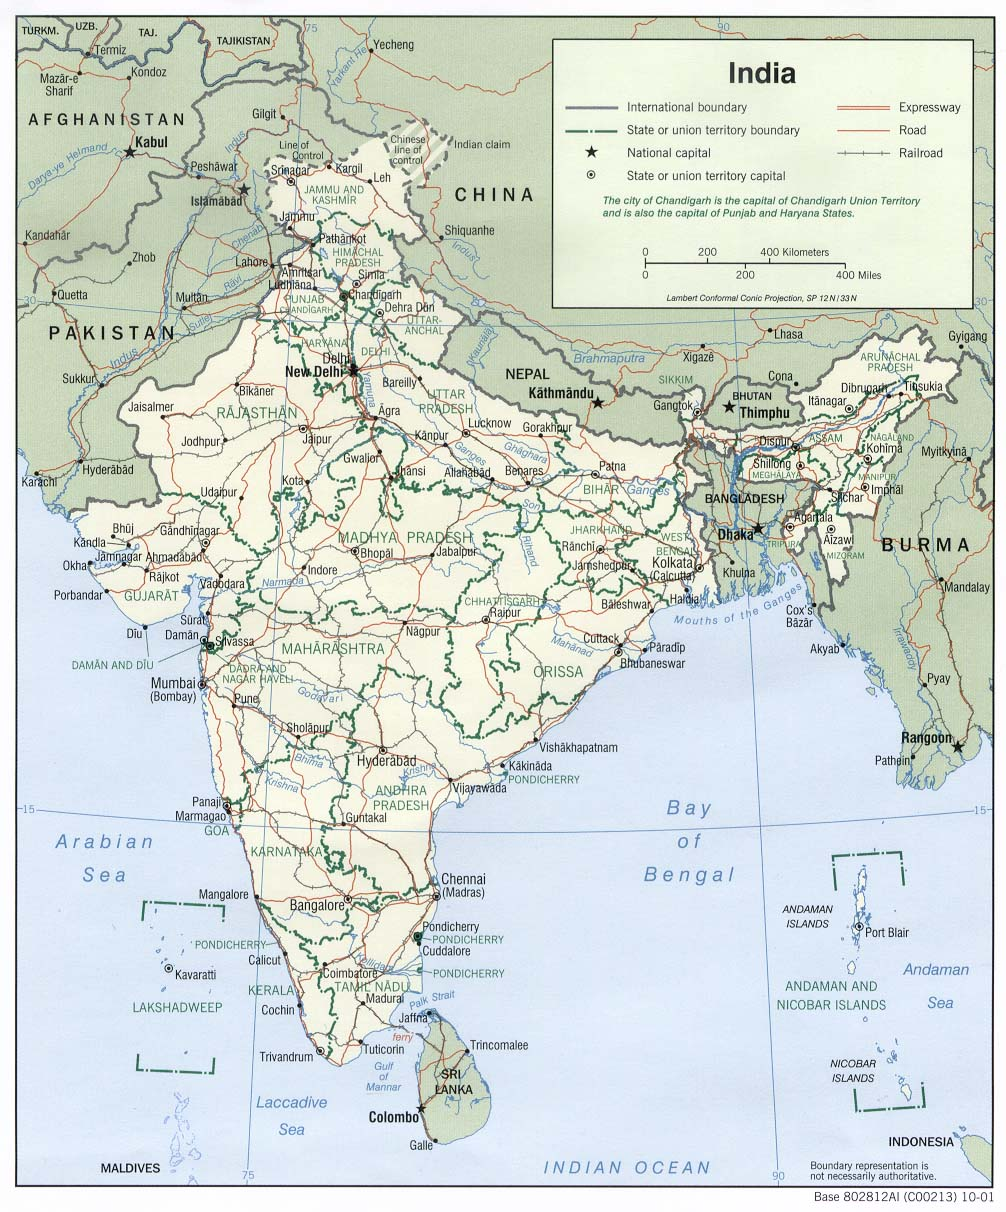 Blank map of india, download free india blank map.